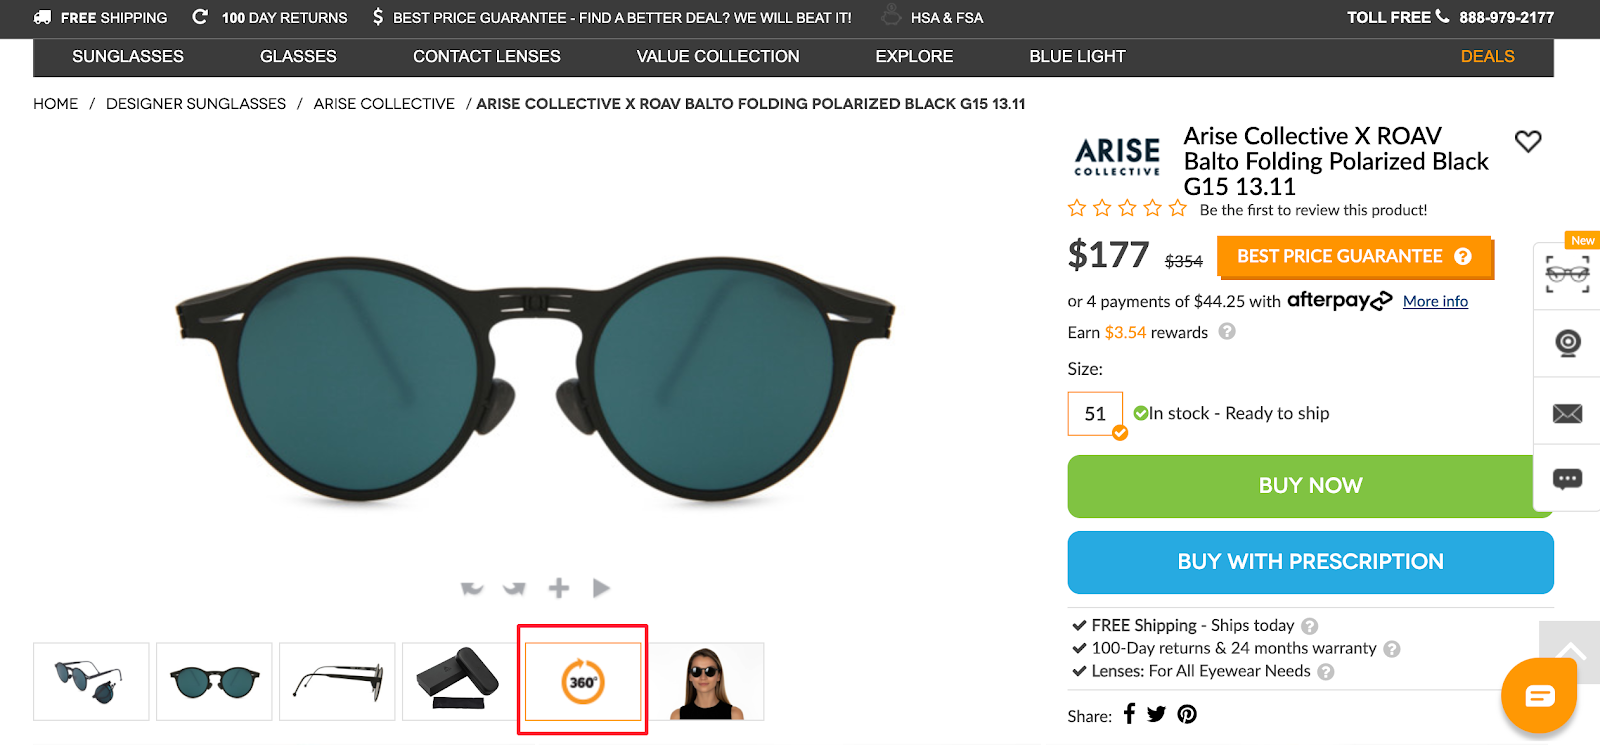 webrotate 360 promote online merchandising in product page